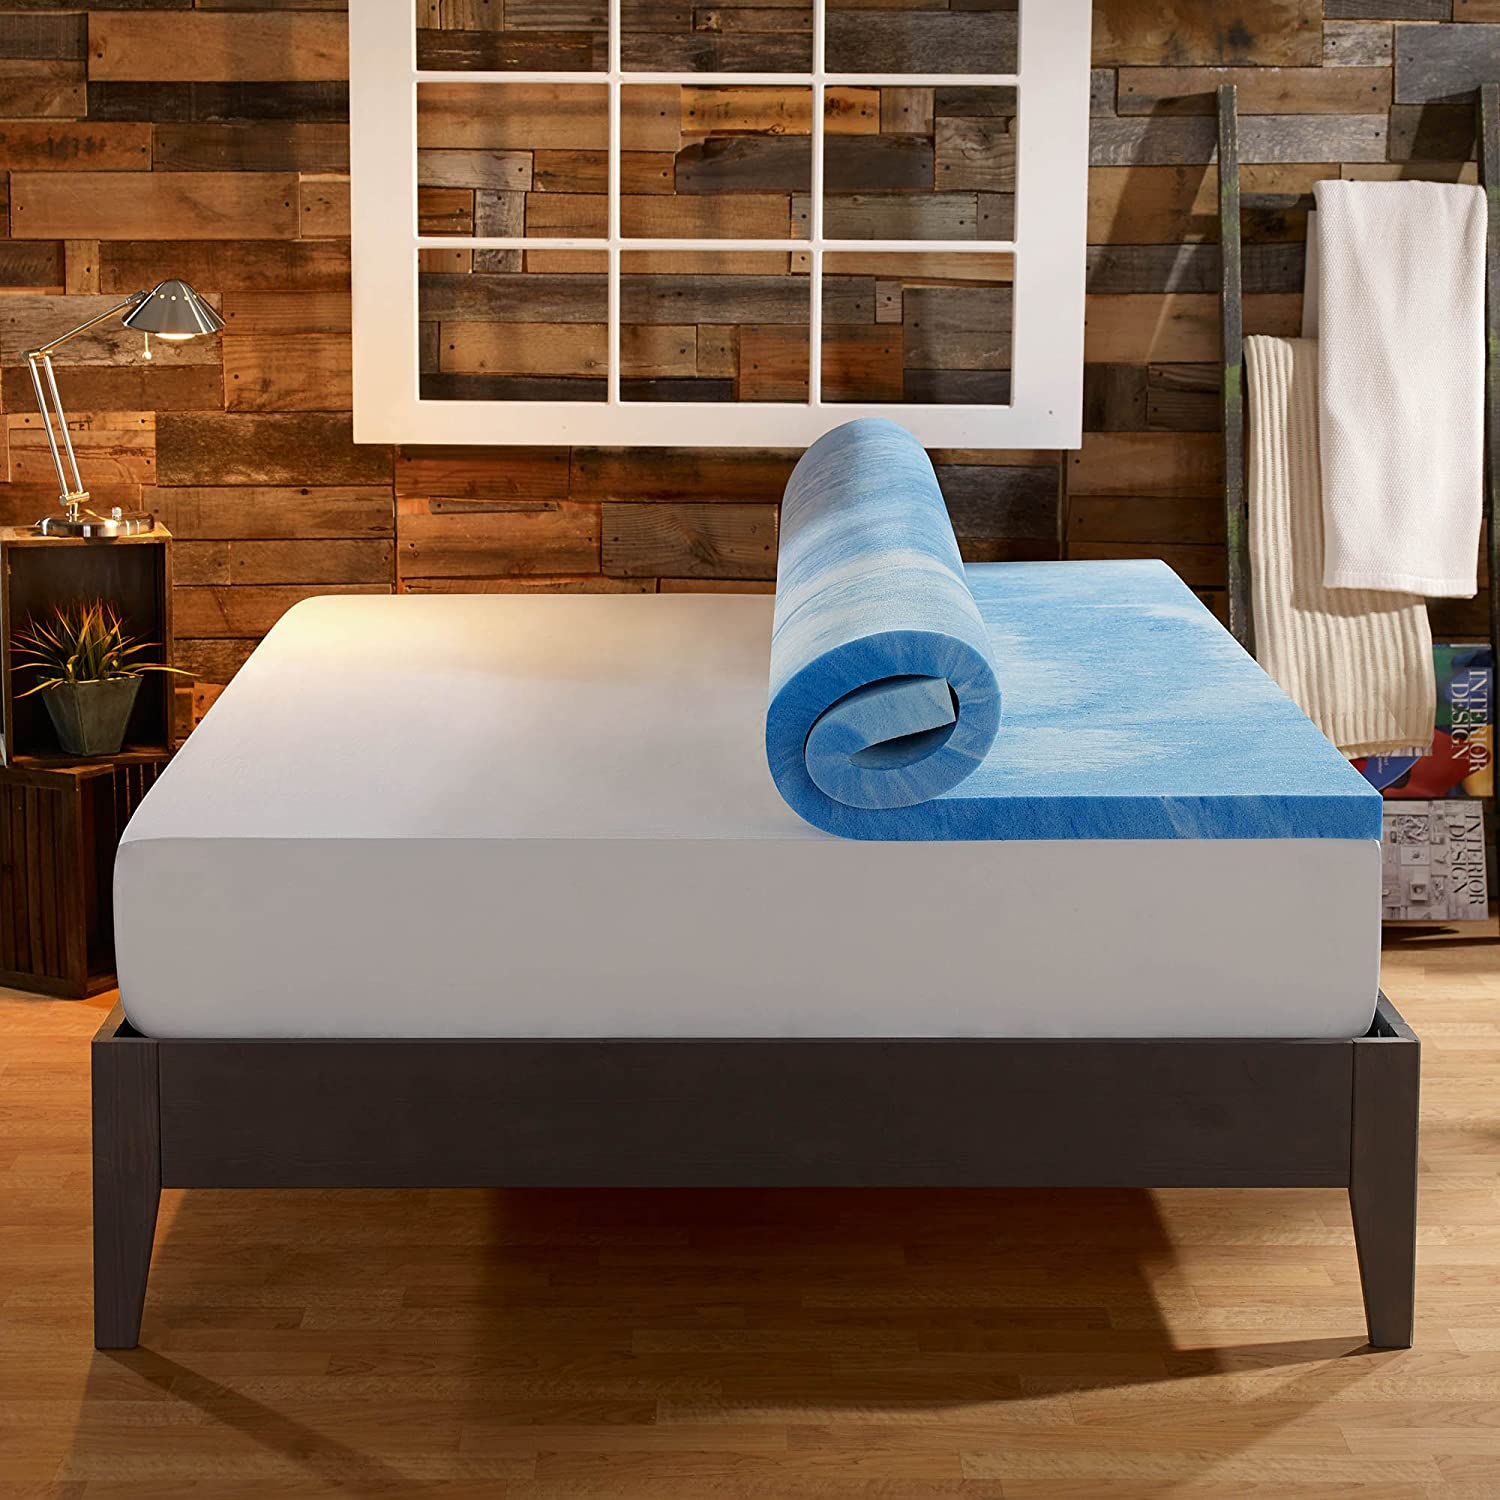 comfort kitchen dp loft toppers foam cool queen mattress inch com king sleep high memory home topper amazon